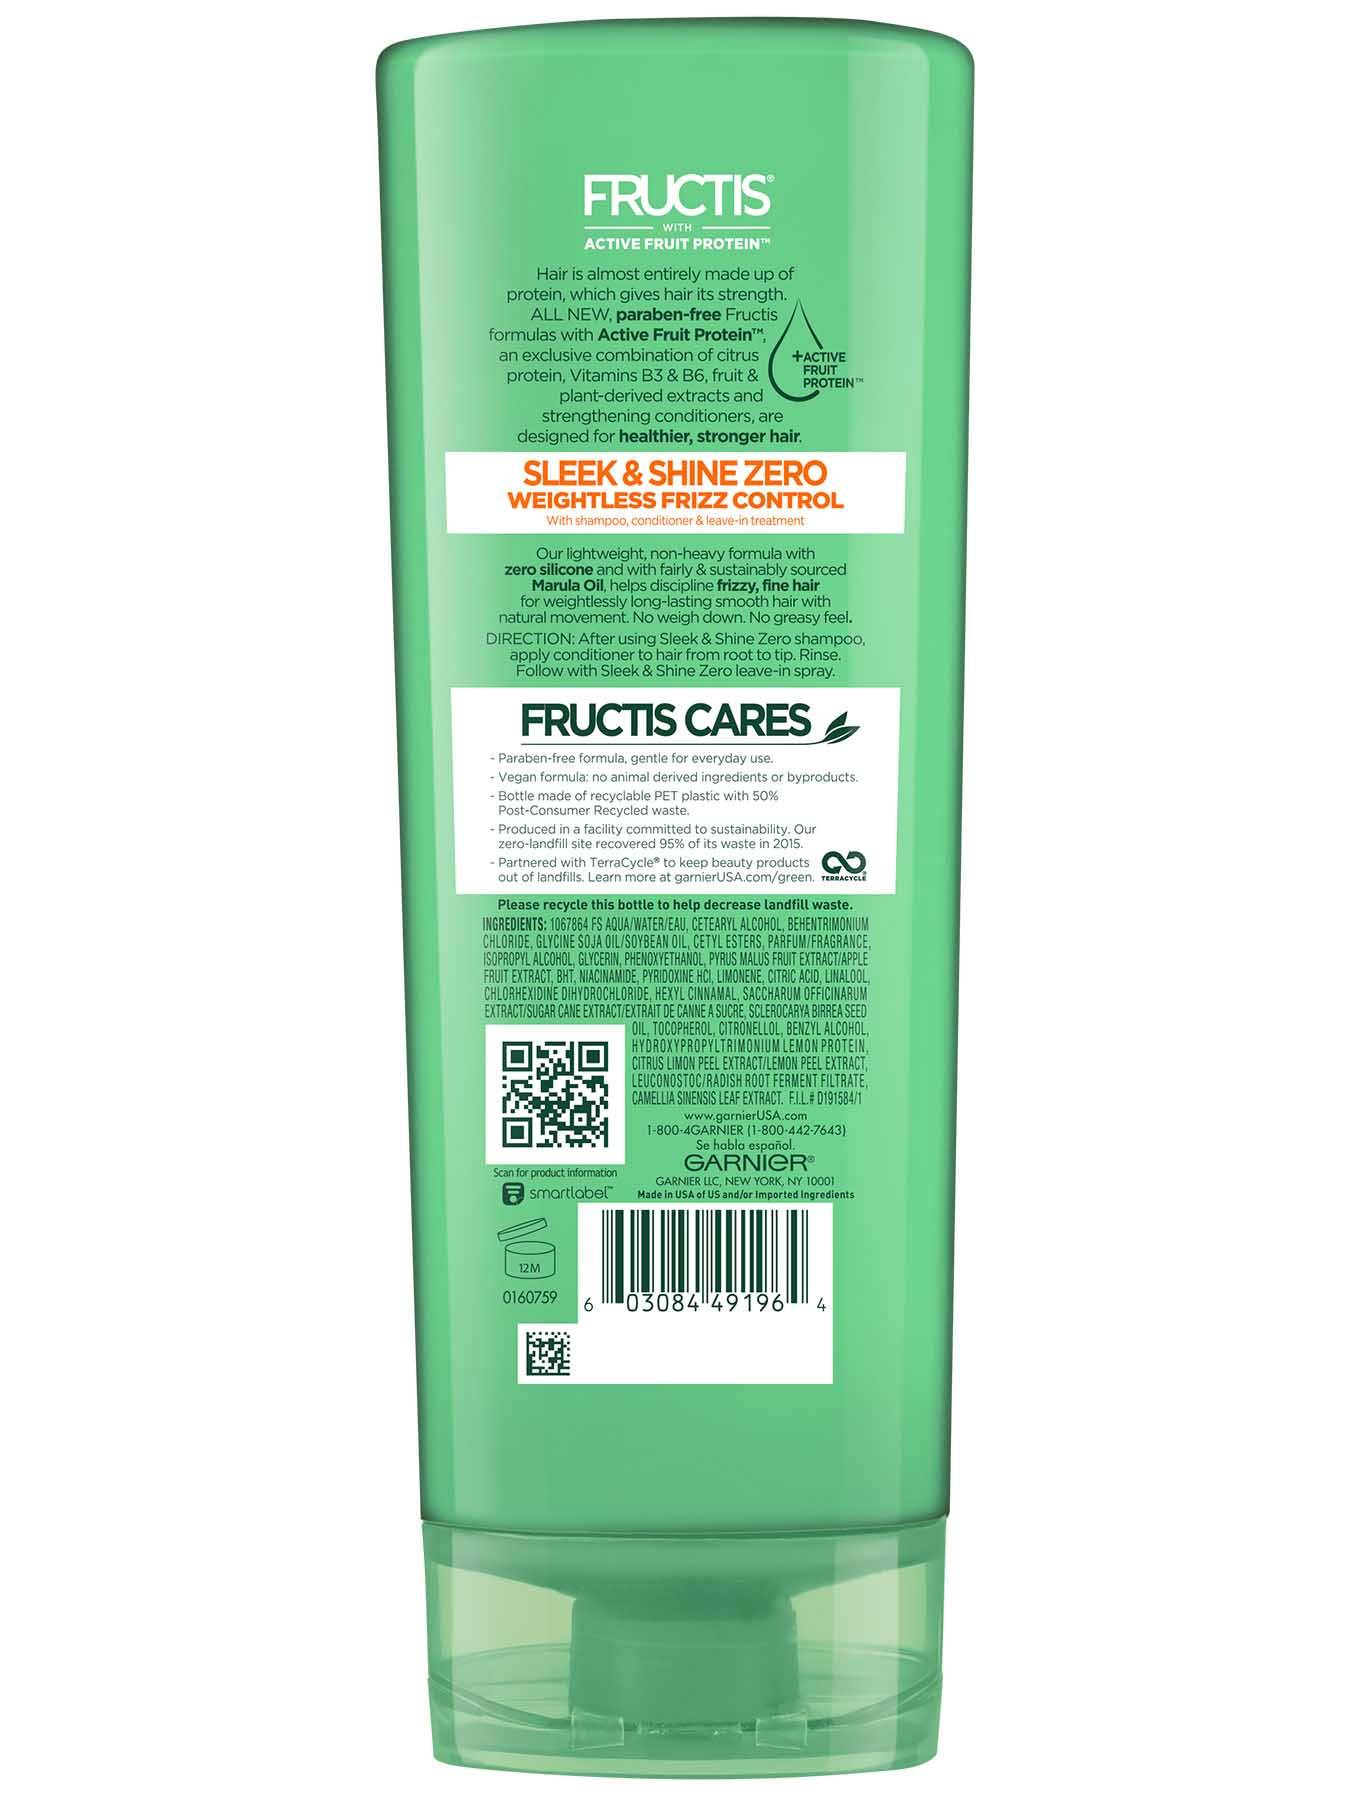 Garnier Fructis Sleek & Shine Zero Conditioner Back Of Bottle